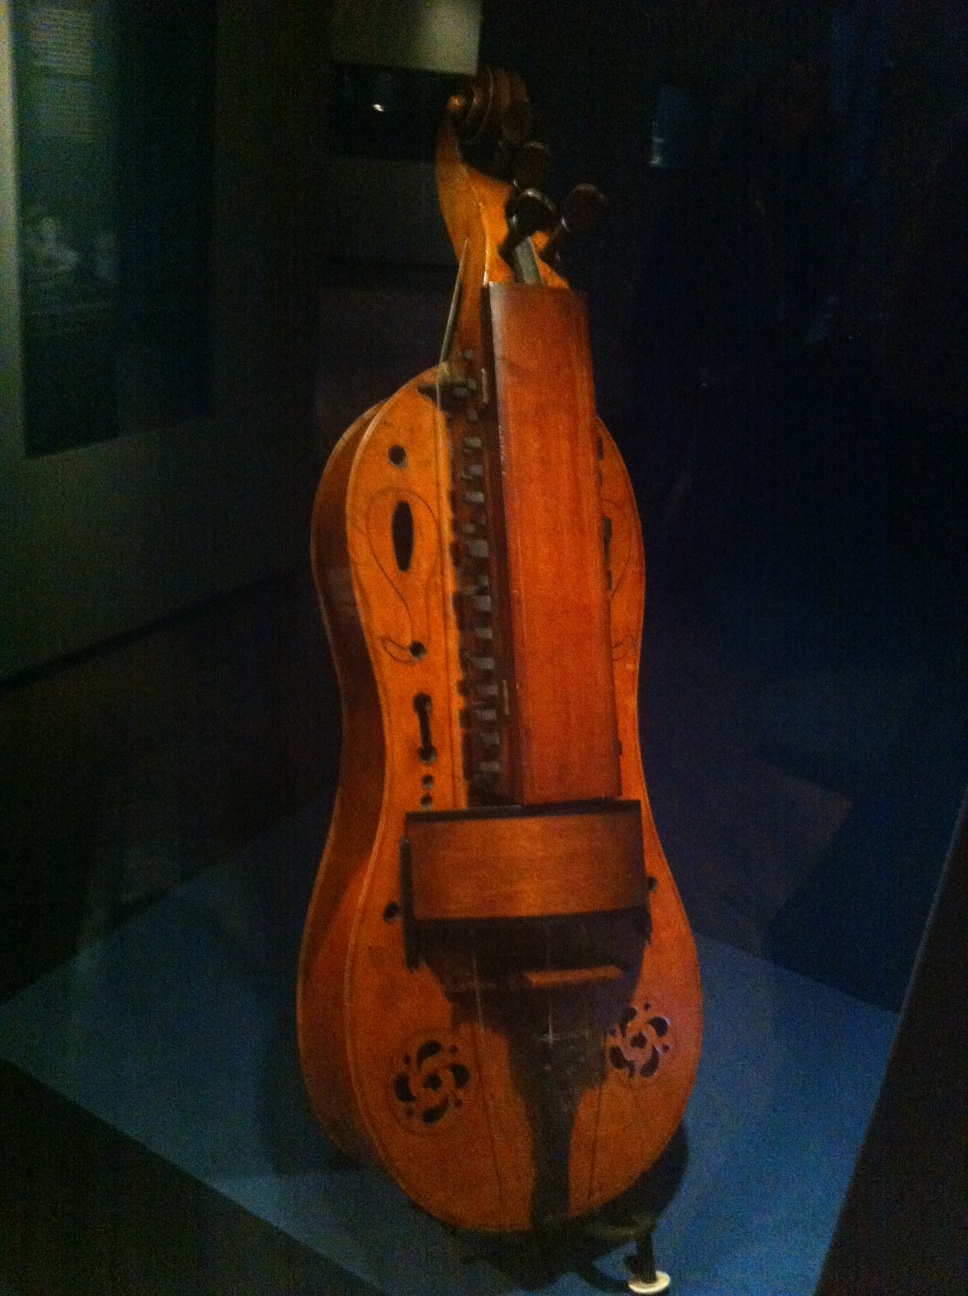 This hurdy-gurdy instrument is just one of the many exhibits of historical decorative arts and crafts in the museum.